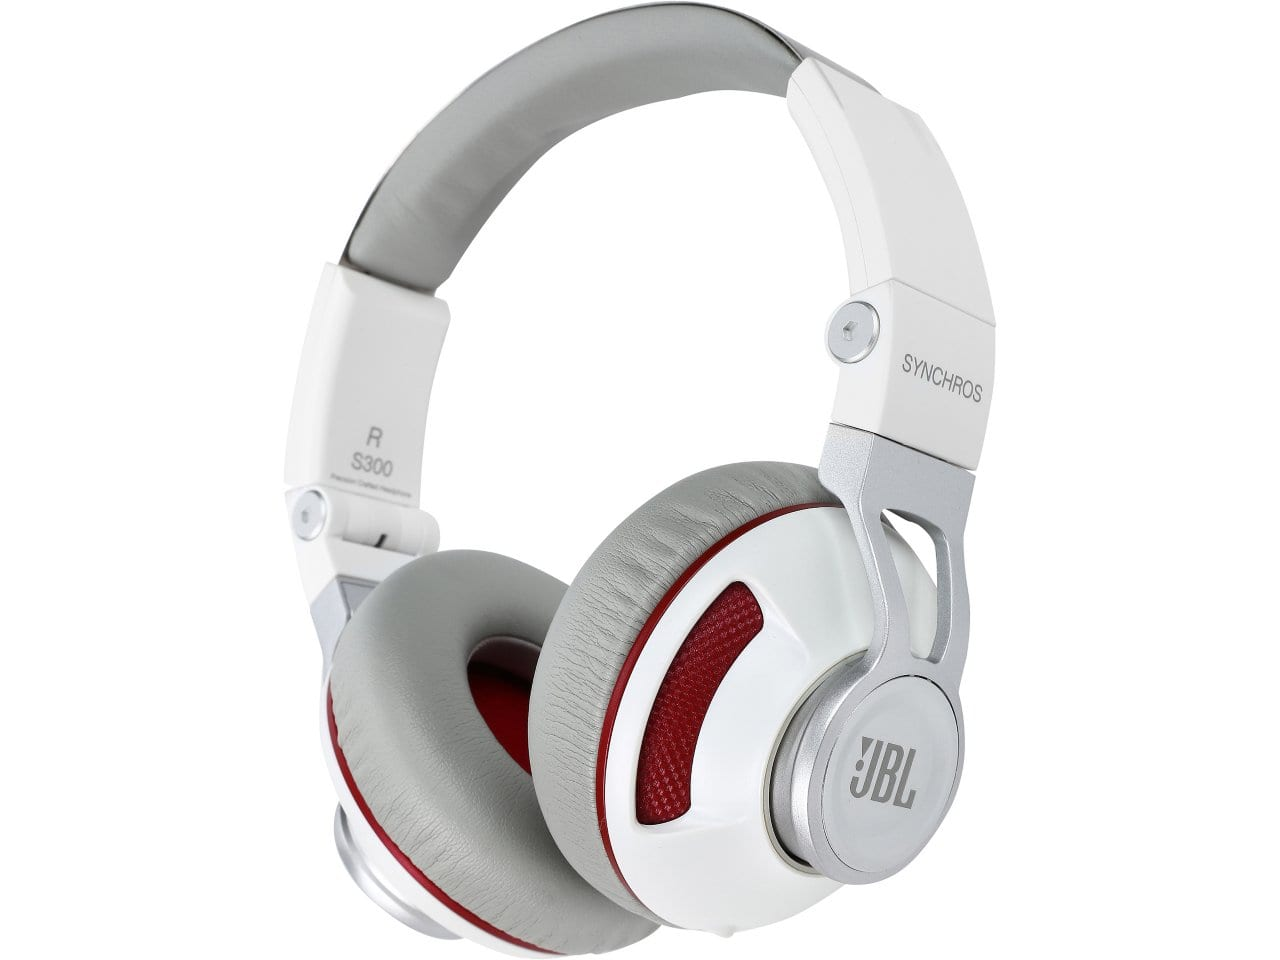 JBL Synchros S300 On-Ear White & Red Headphones with iOS Remote + Mic for $39.99, Klipsch PRO 6502 60W 2-Way In-Wall Home Audio Speaker for $149.00 AR & More @ Newegg.com